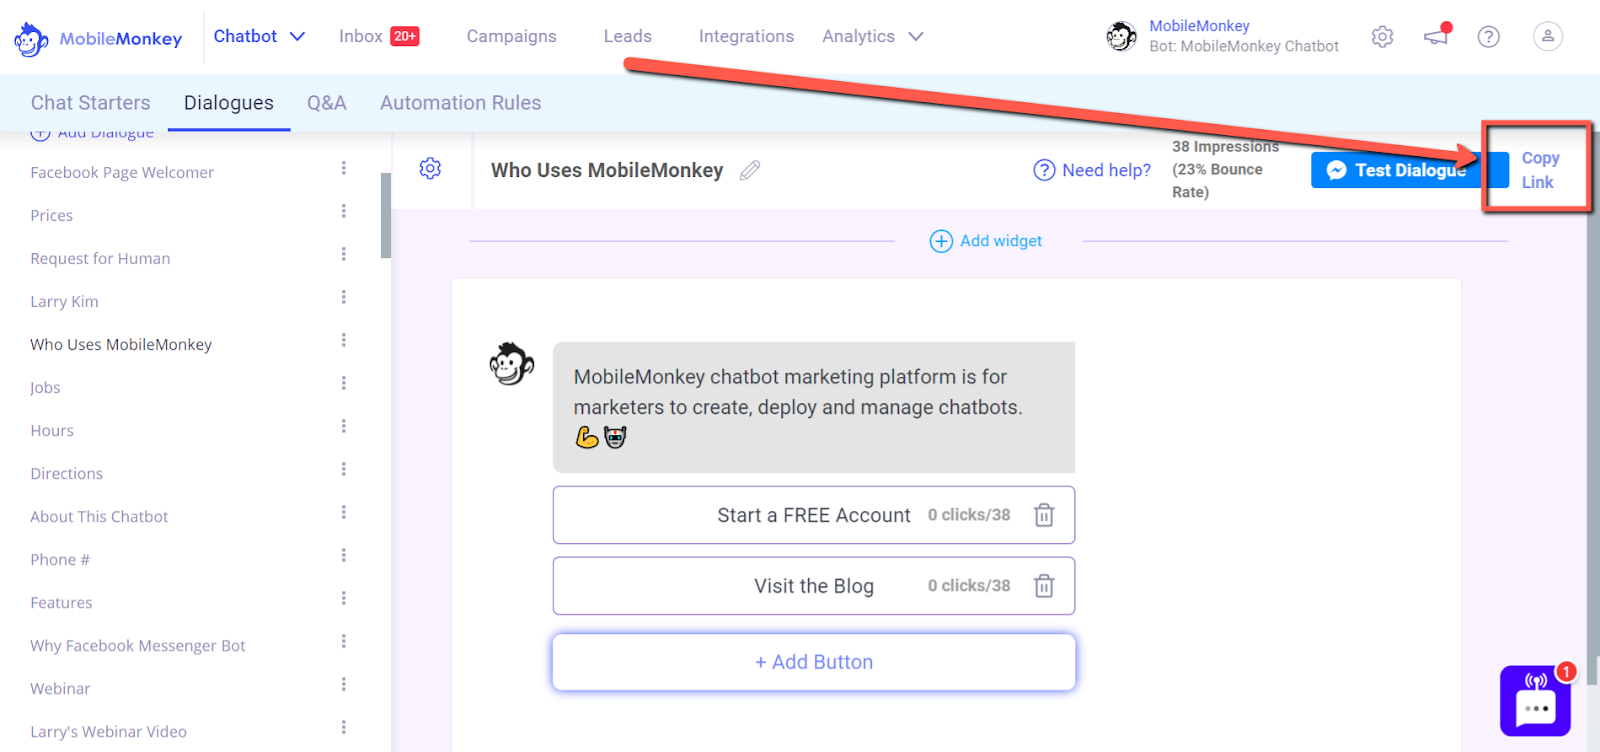 link ads to Messenger: how to get a shareable Messenger link